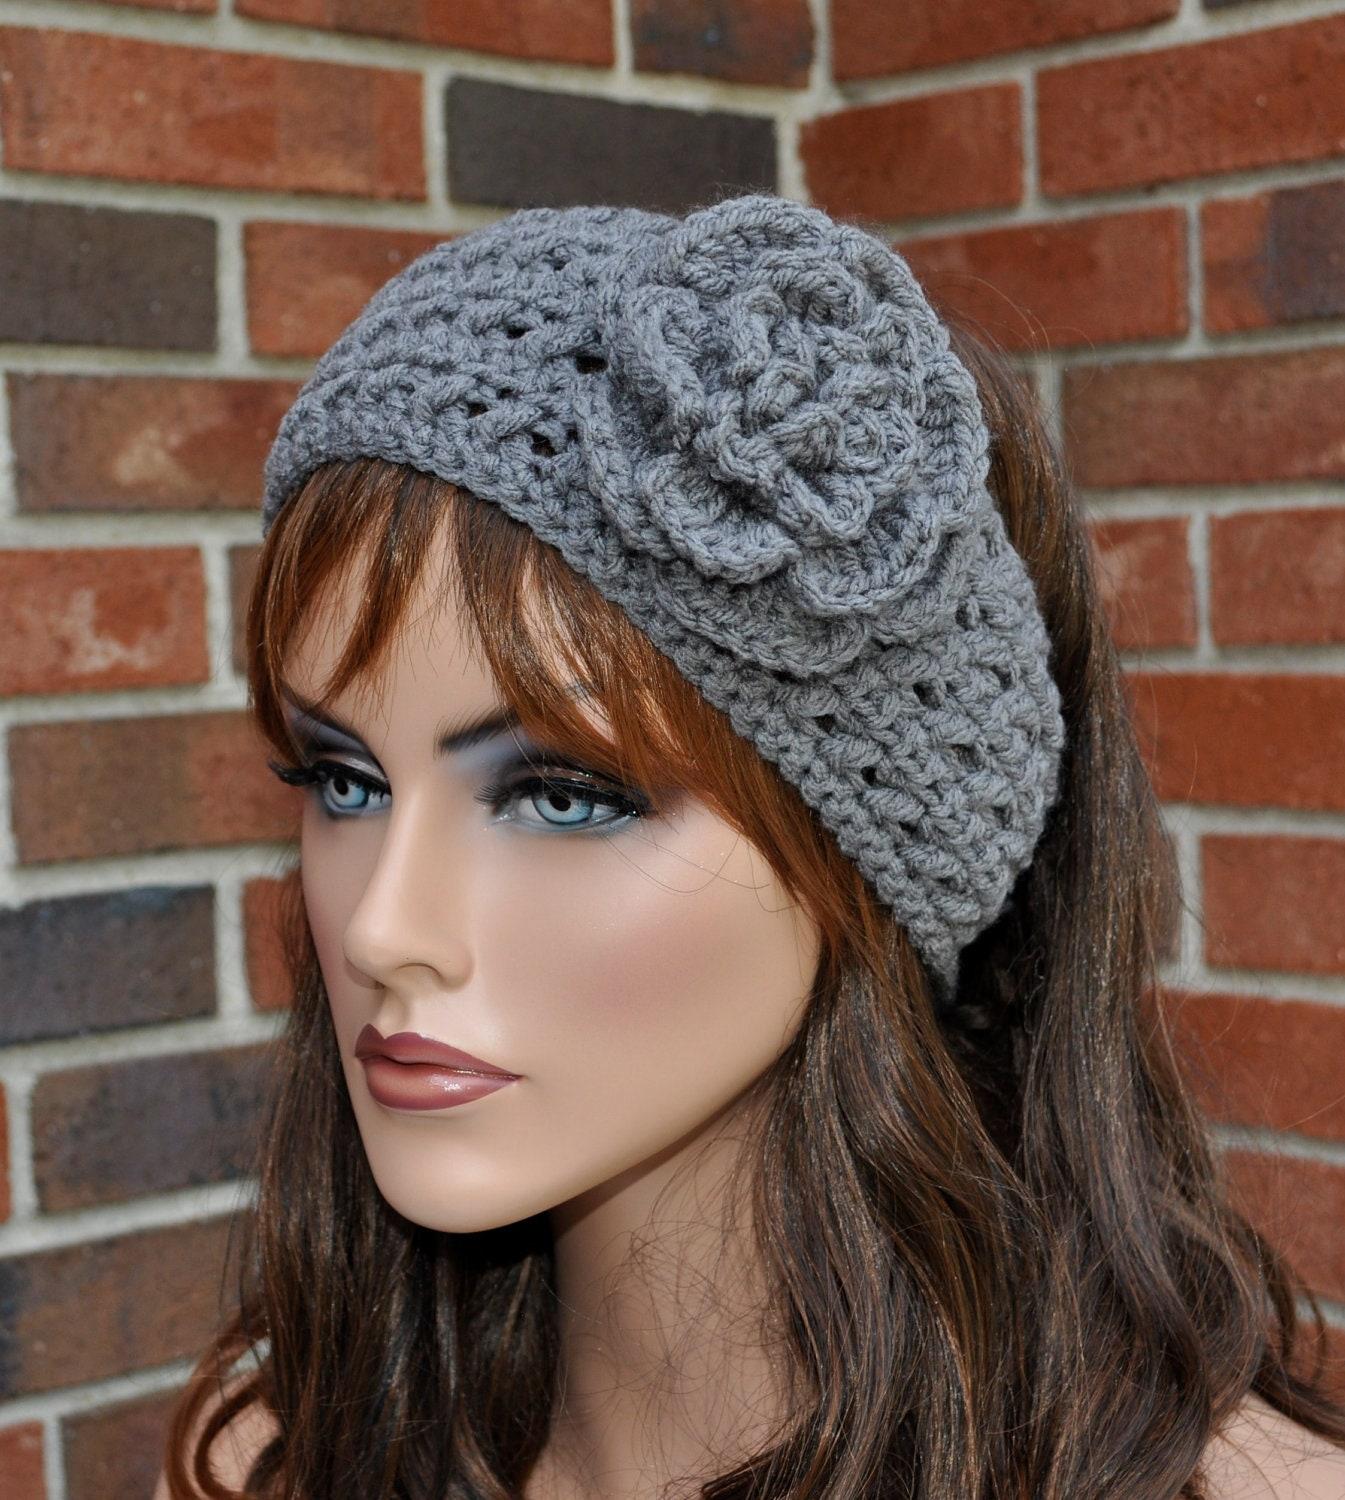 Free Crochet Ear Warmer Patterns For Adults : Crochet Ear Warmer Crochet Headband with FlowerGray by Cobanul